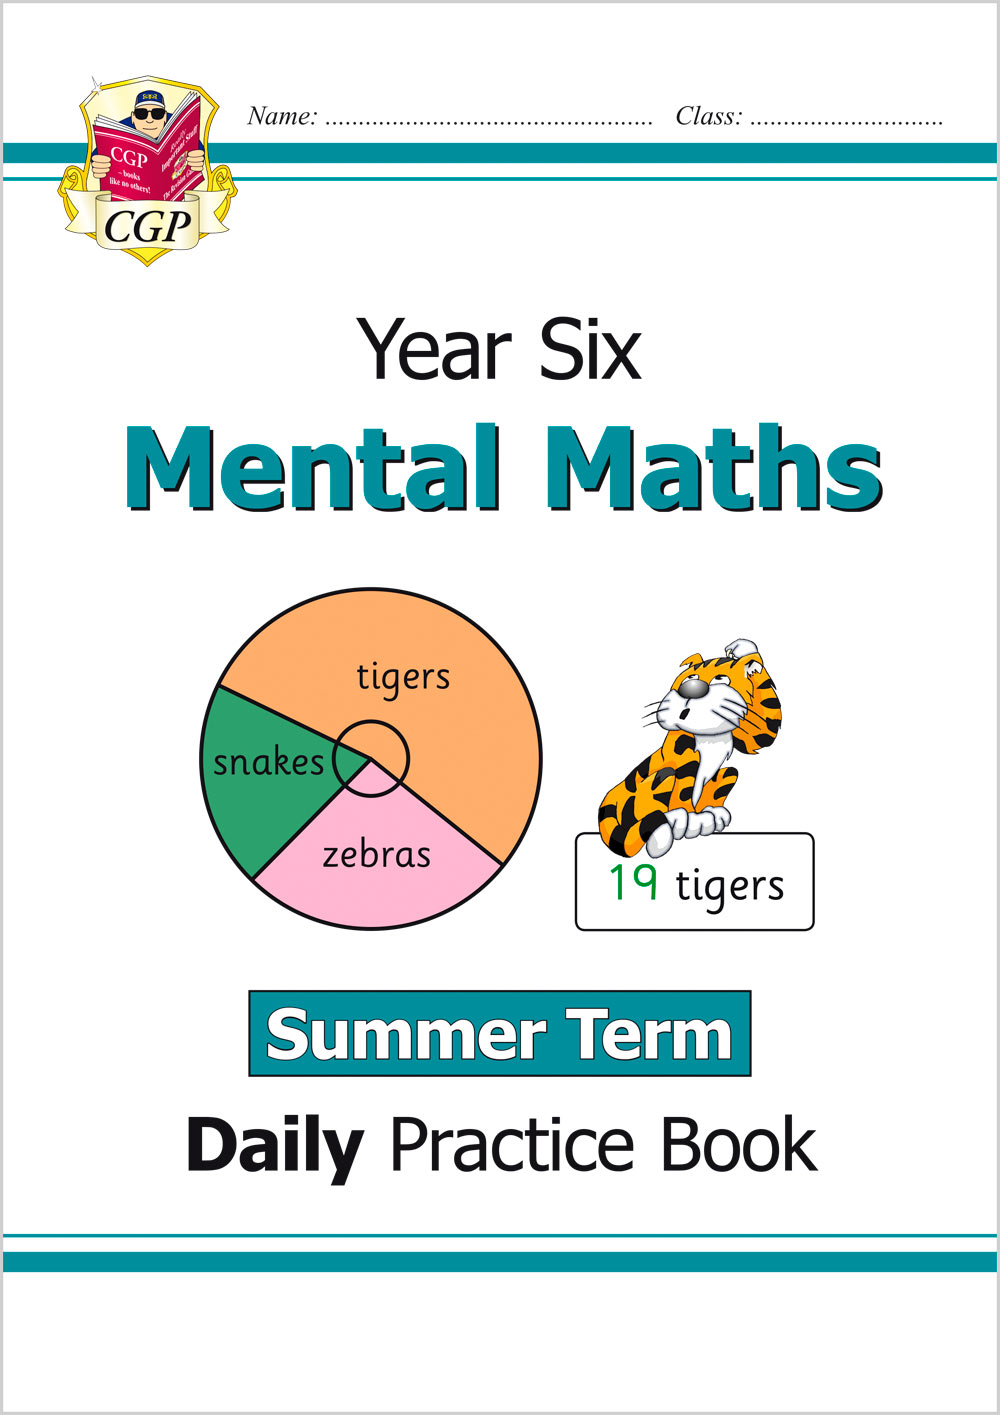 M6MWSU21 - New Mental Maths Daily Practice Book: Year 6 - Summer Term